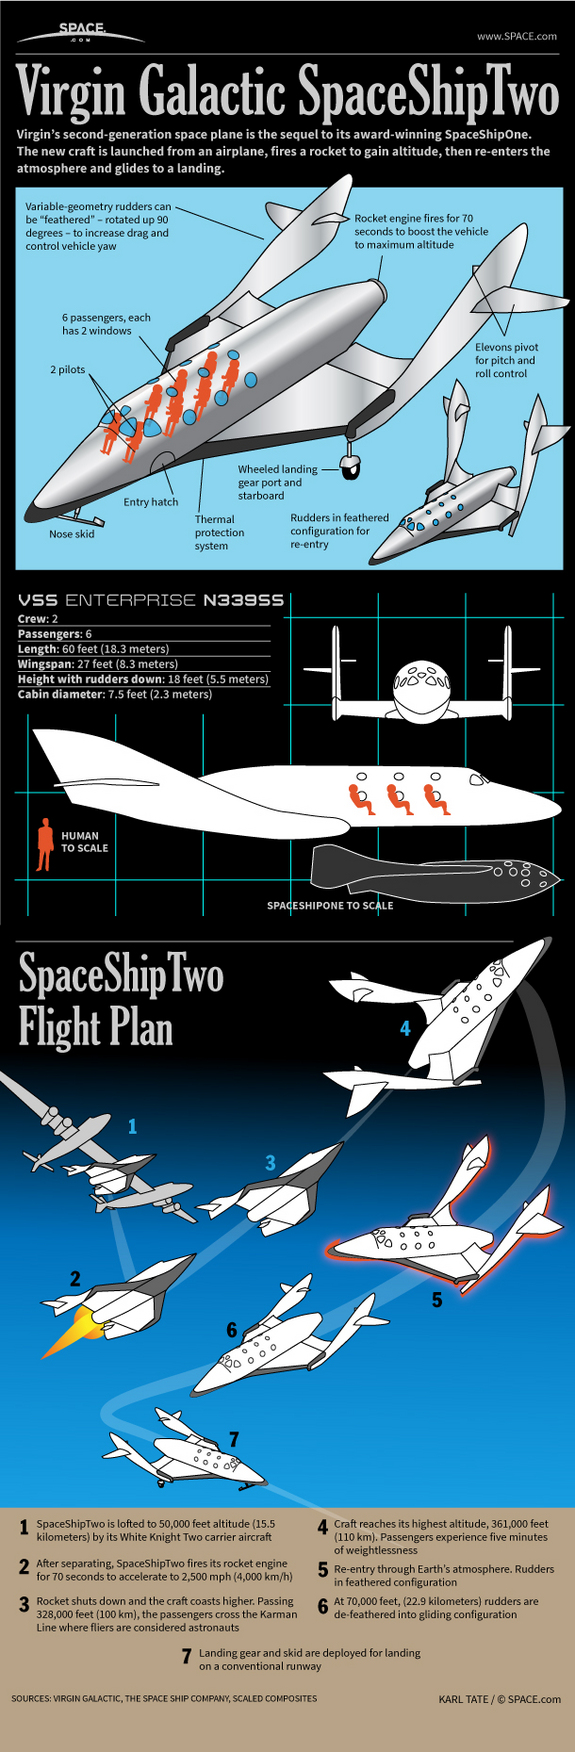 Find out how Virgin Galactic's SpaceShipTwo passenger space plane works, in this SPACE.com infographic.